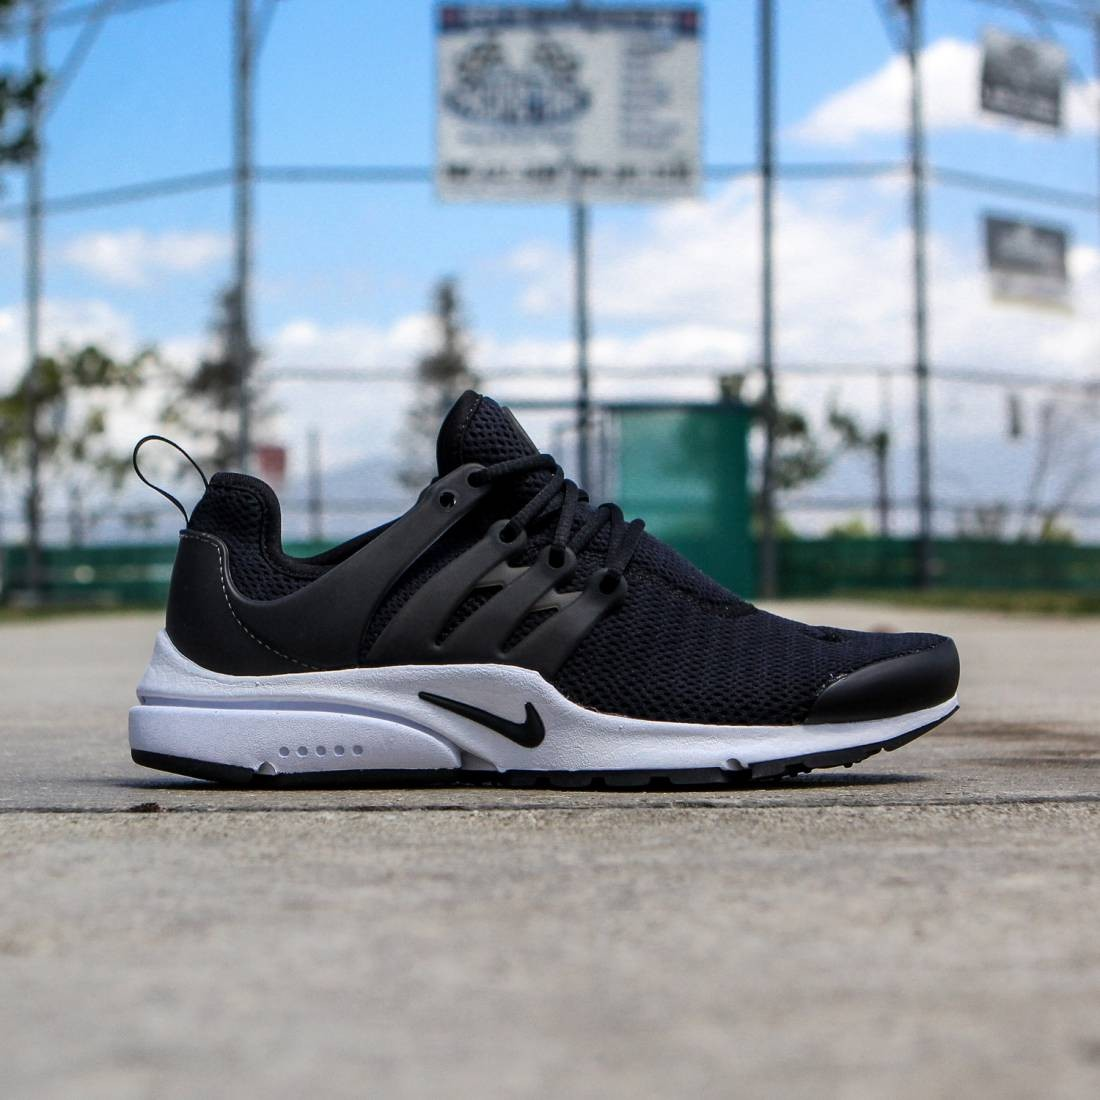 the best attitude 9a43c c81fa Nike Women NIKE AIR PRESTO (black / white / black)